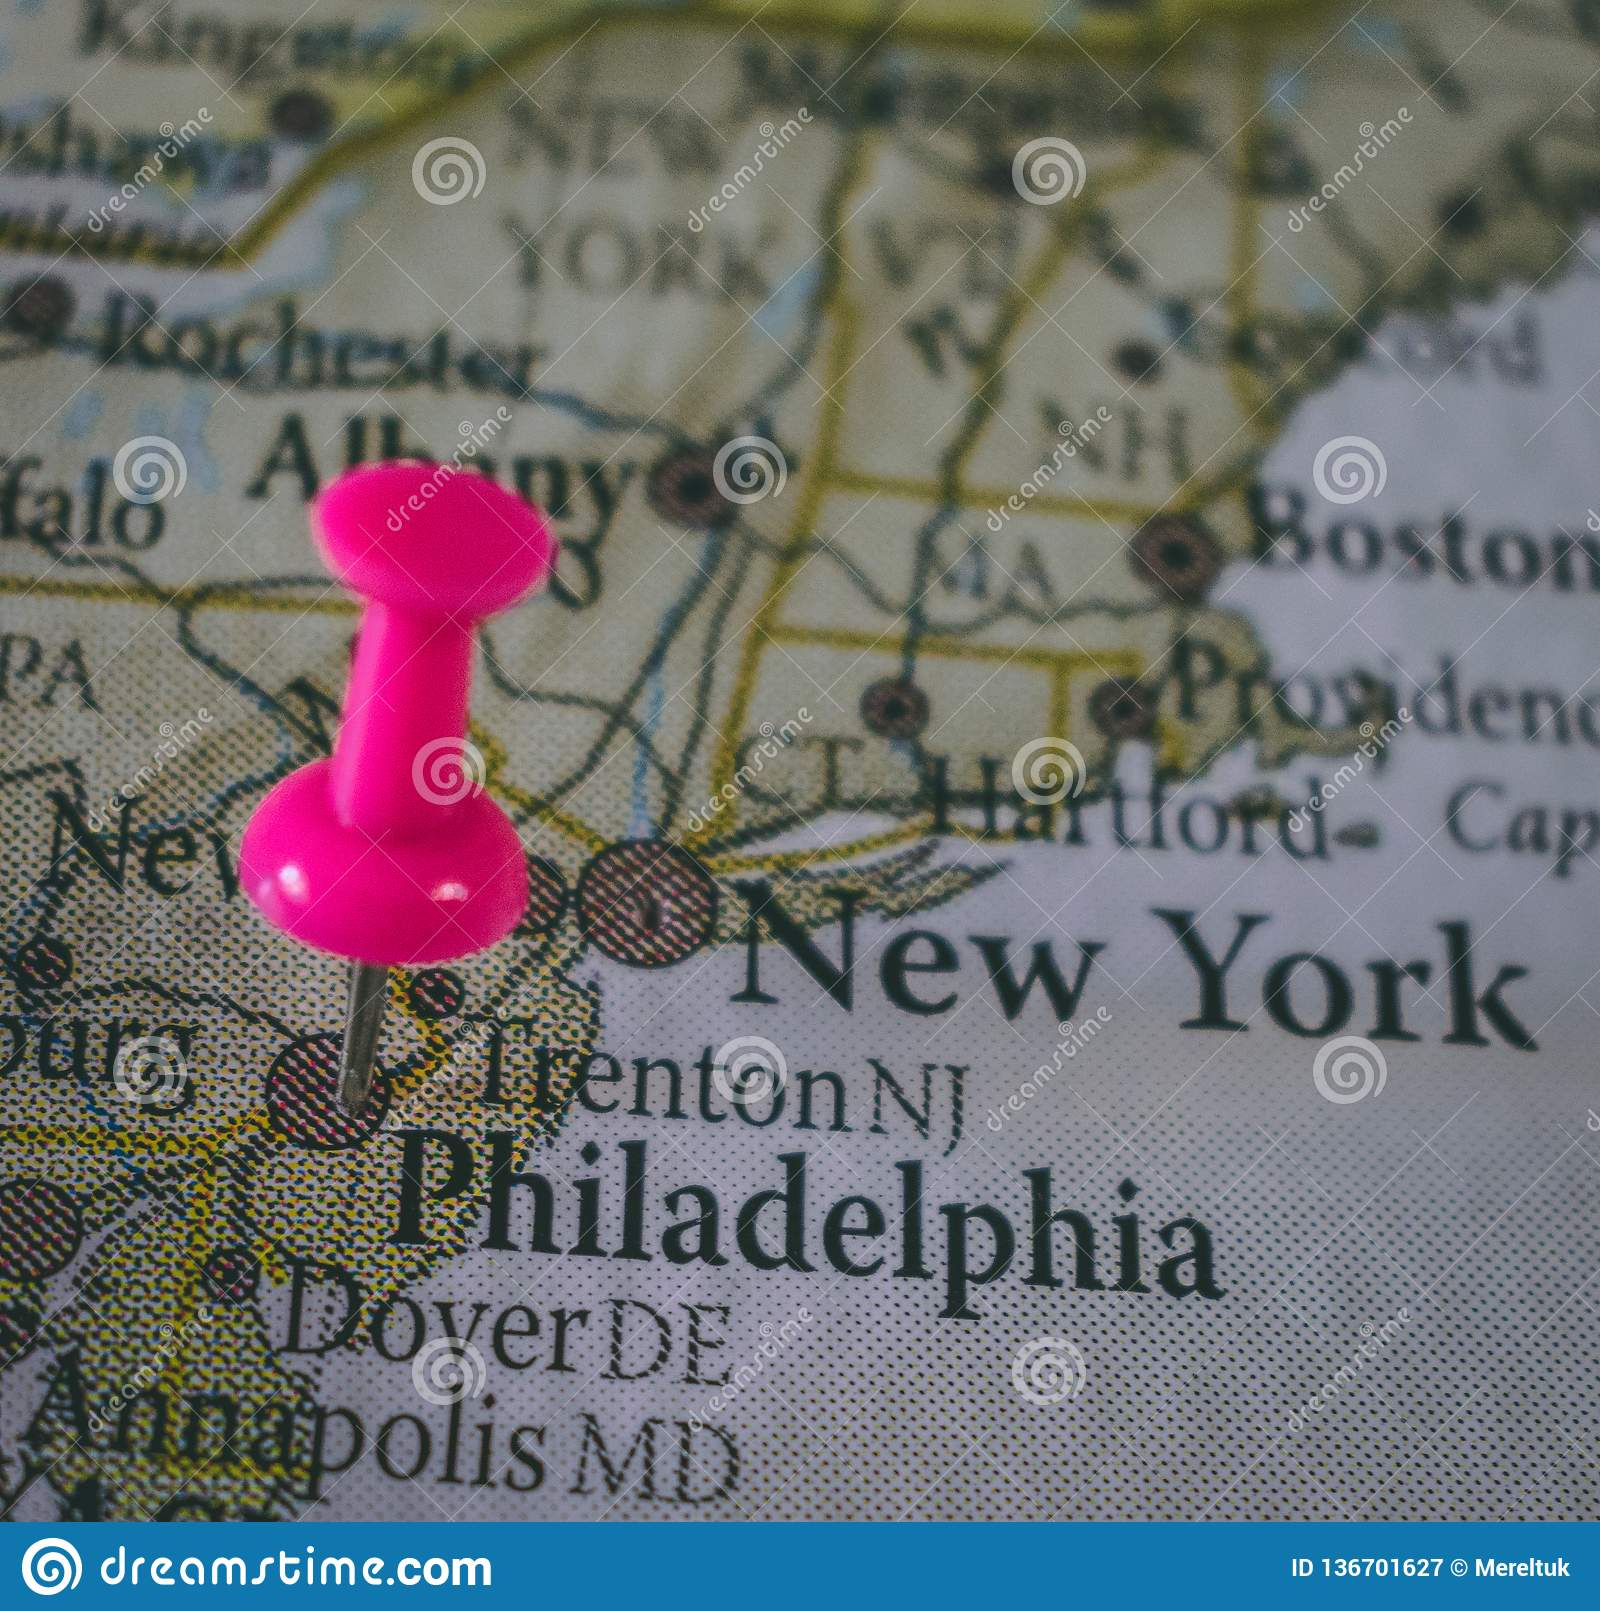 Close up of Philadelphia pin pointed on the world map with a pink pushpin